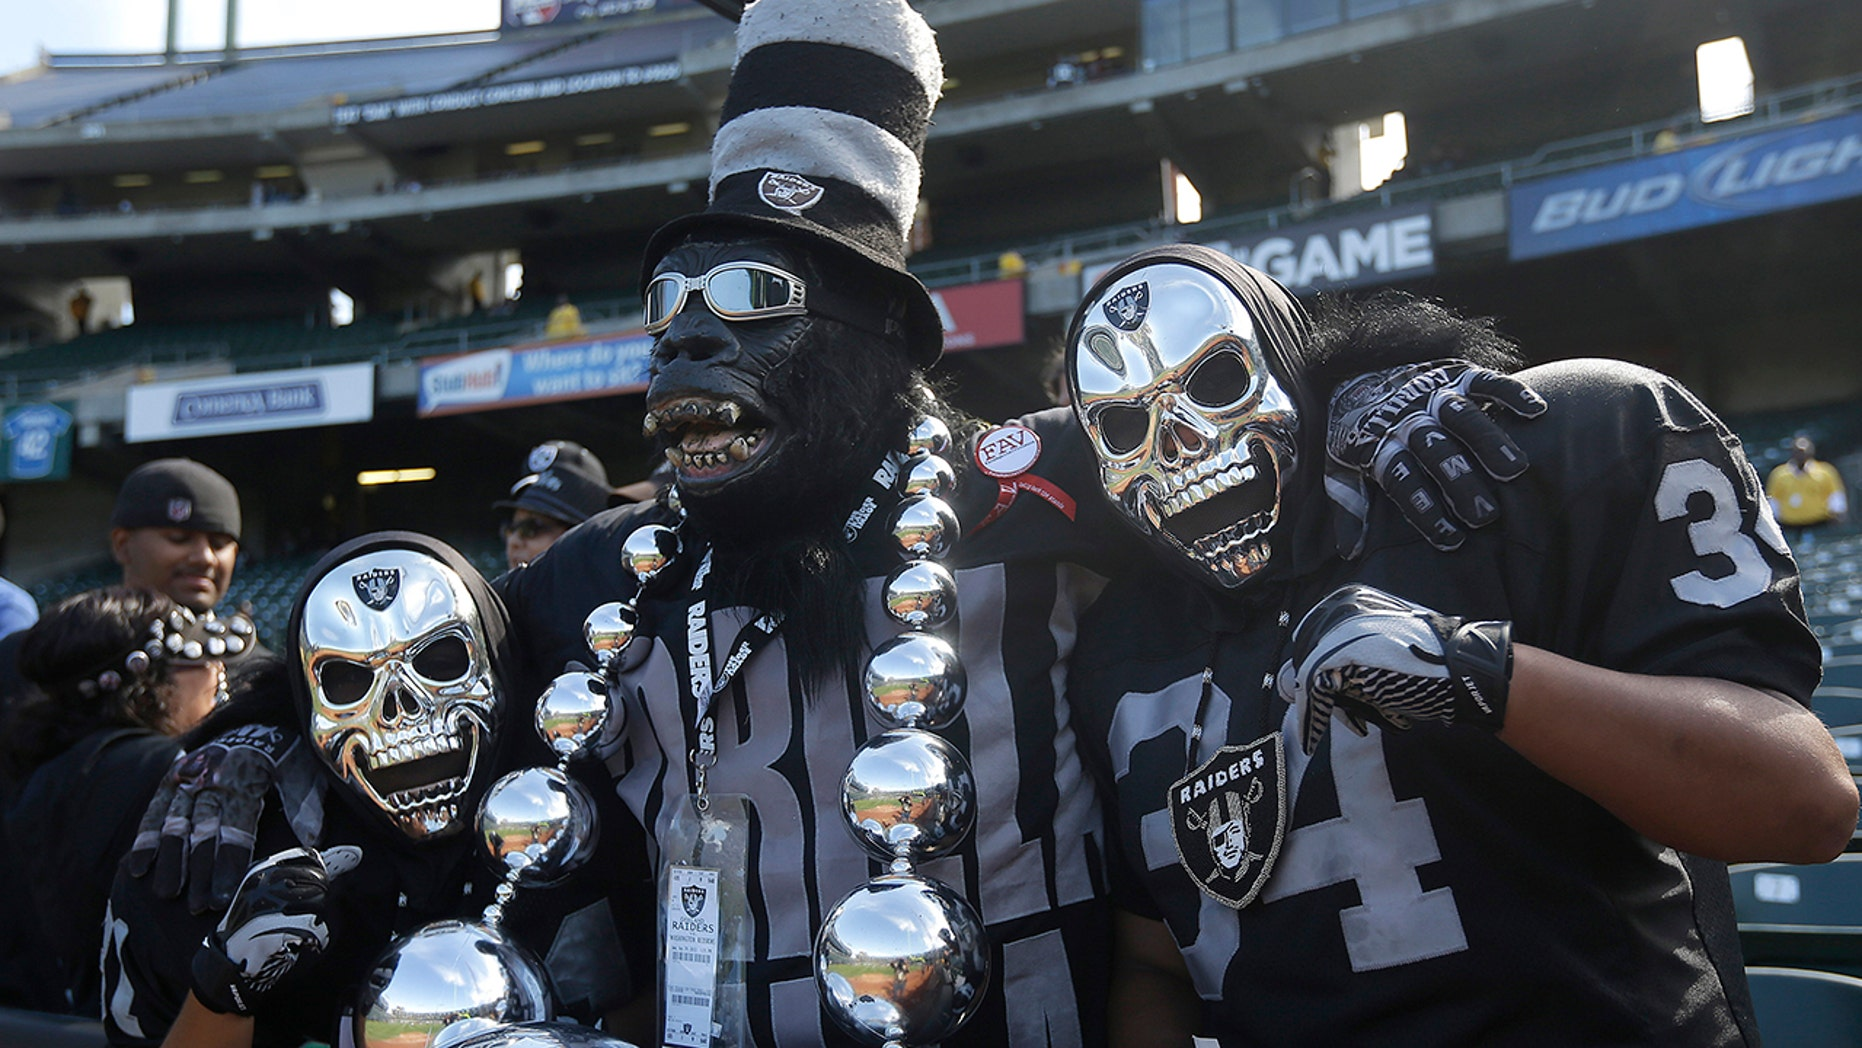 FILE - In this Sept. 29, 2013, file photo, Oakland Raiders fan Gorilla Rilla, center, poses for photographs with fans before an NFL football game between the Oakland Raiders and the Washington Redskins in Oakland, Calif. The Raiders' final scheduled game in Oakland on Sunday, Dec. 15, 2019, will be an emotional one for players and coaches, as well as fans. (AP Photo/Marcio Jose Sanchez, File)